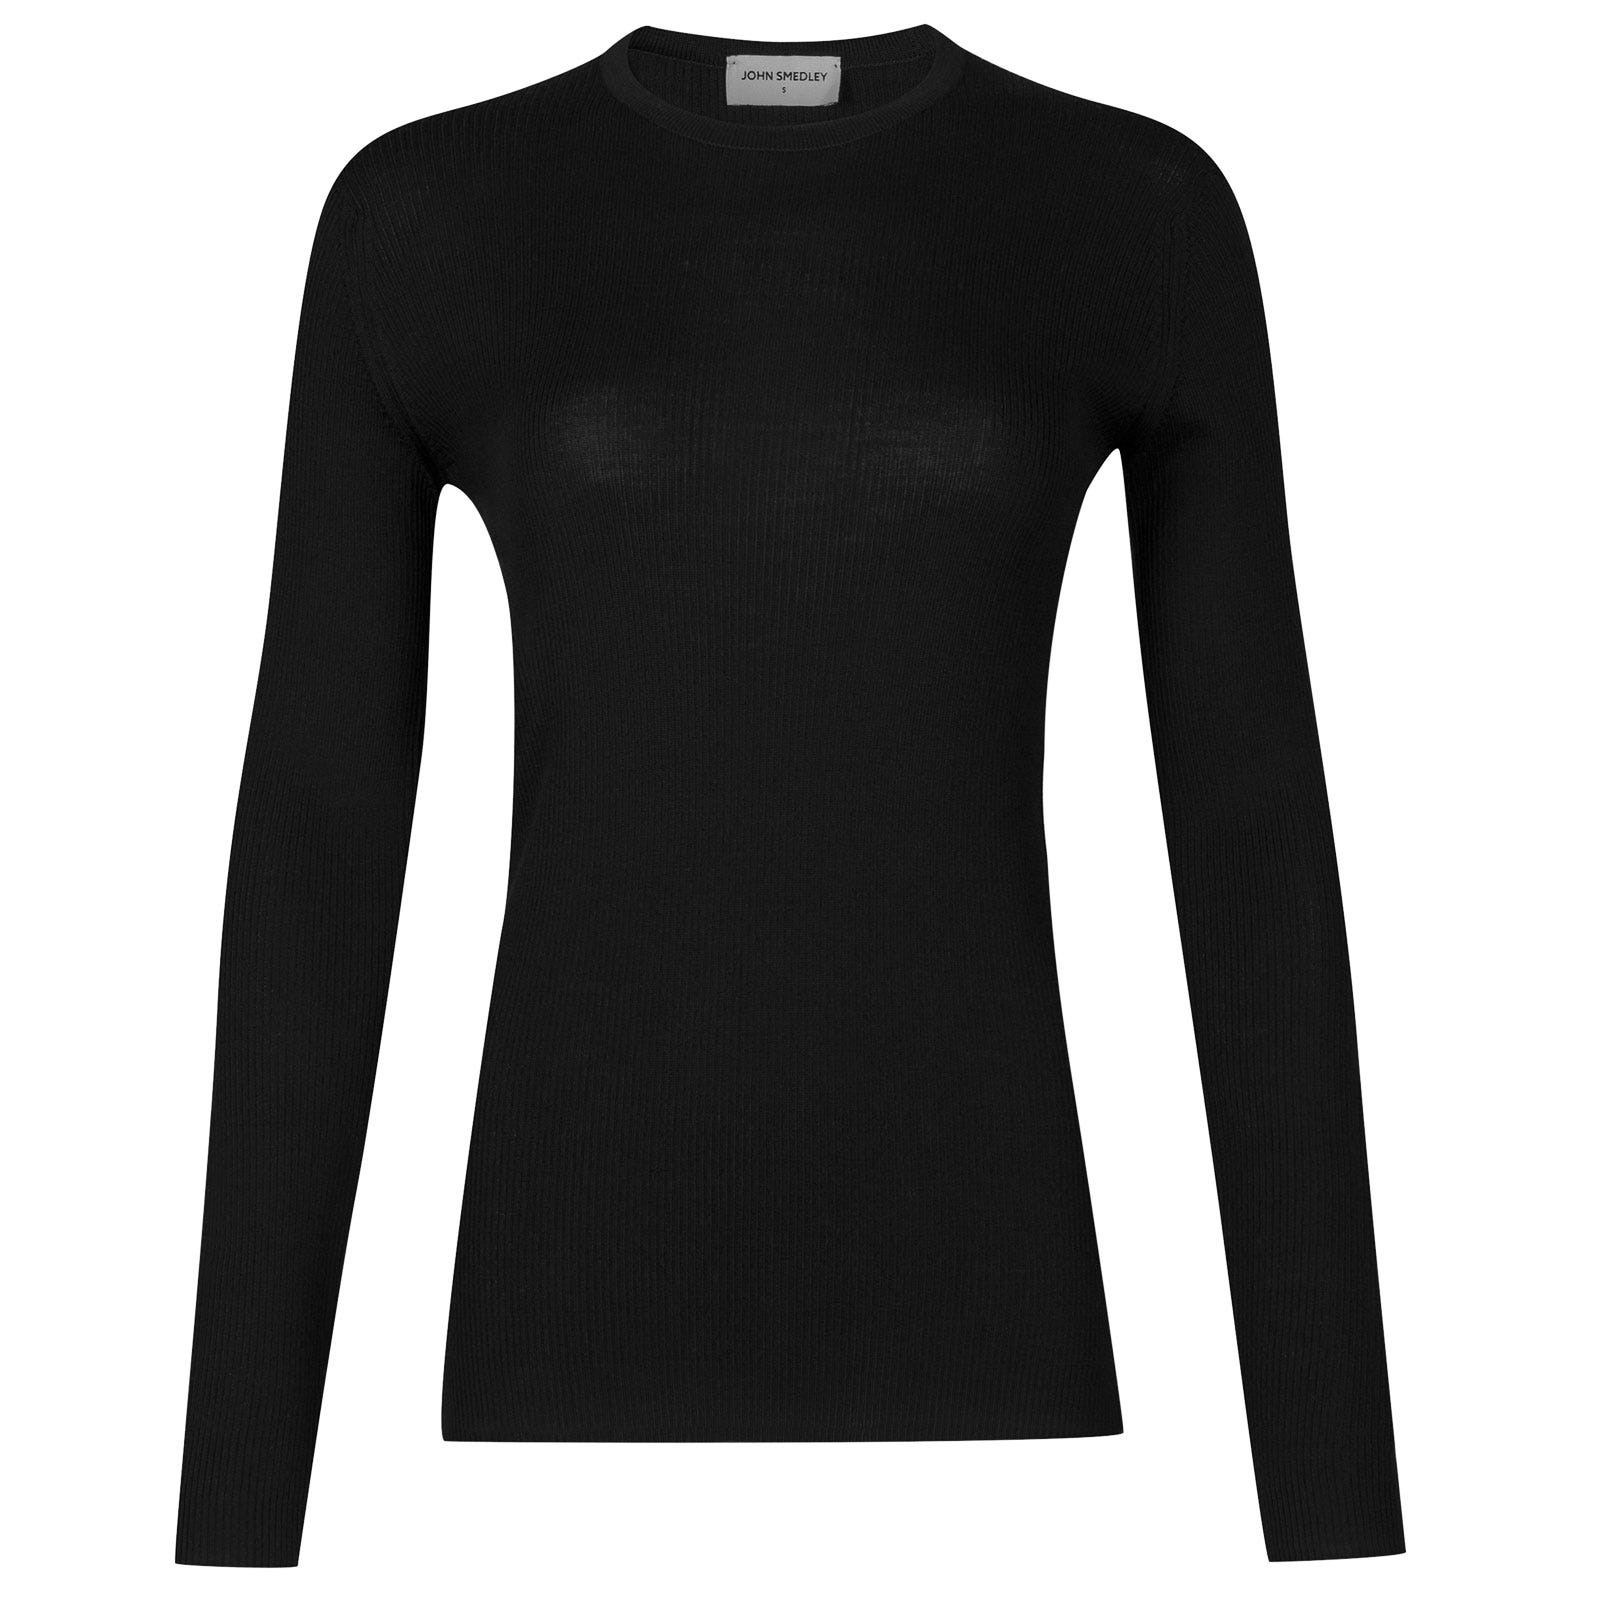 John Smedley corey Merino Wool Sweater in Black-XL